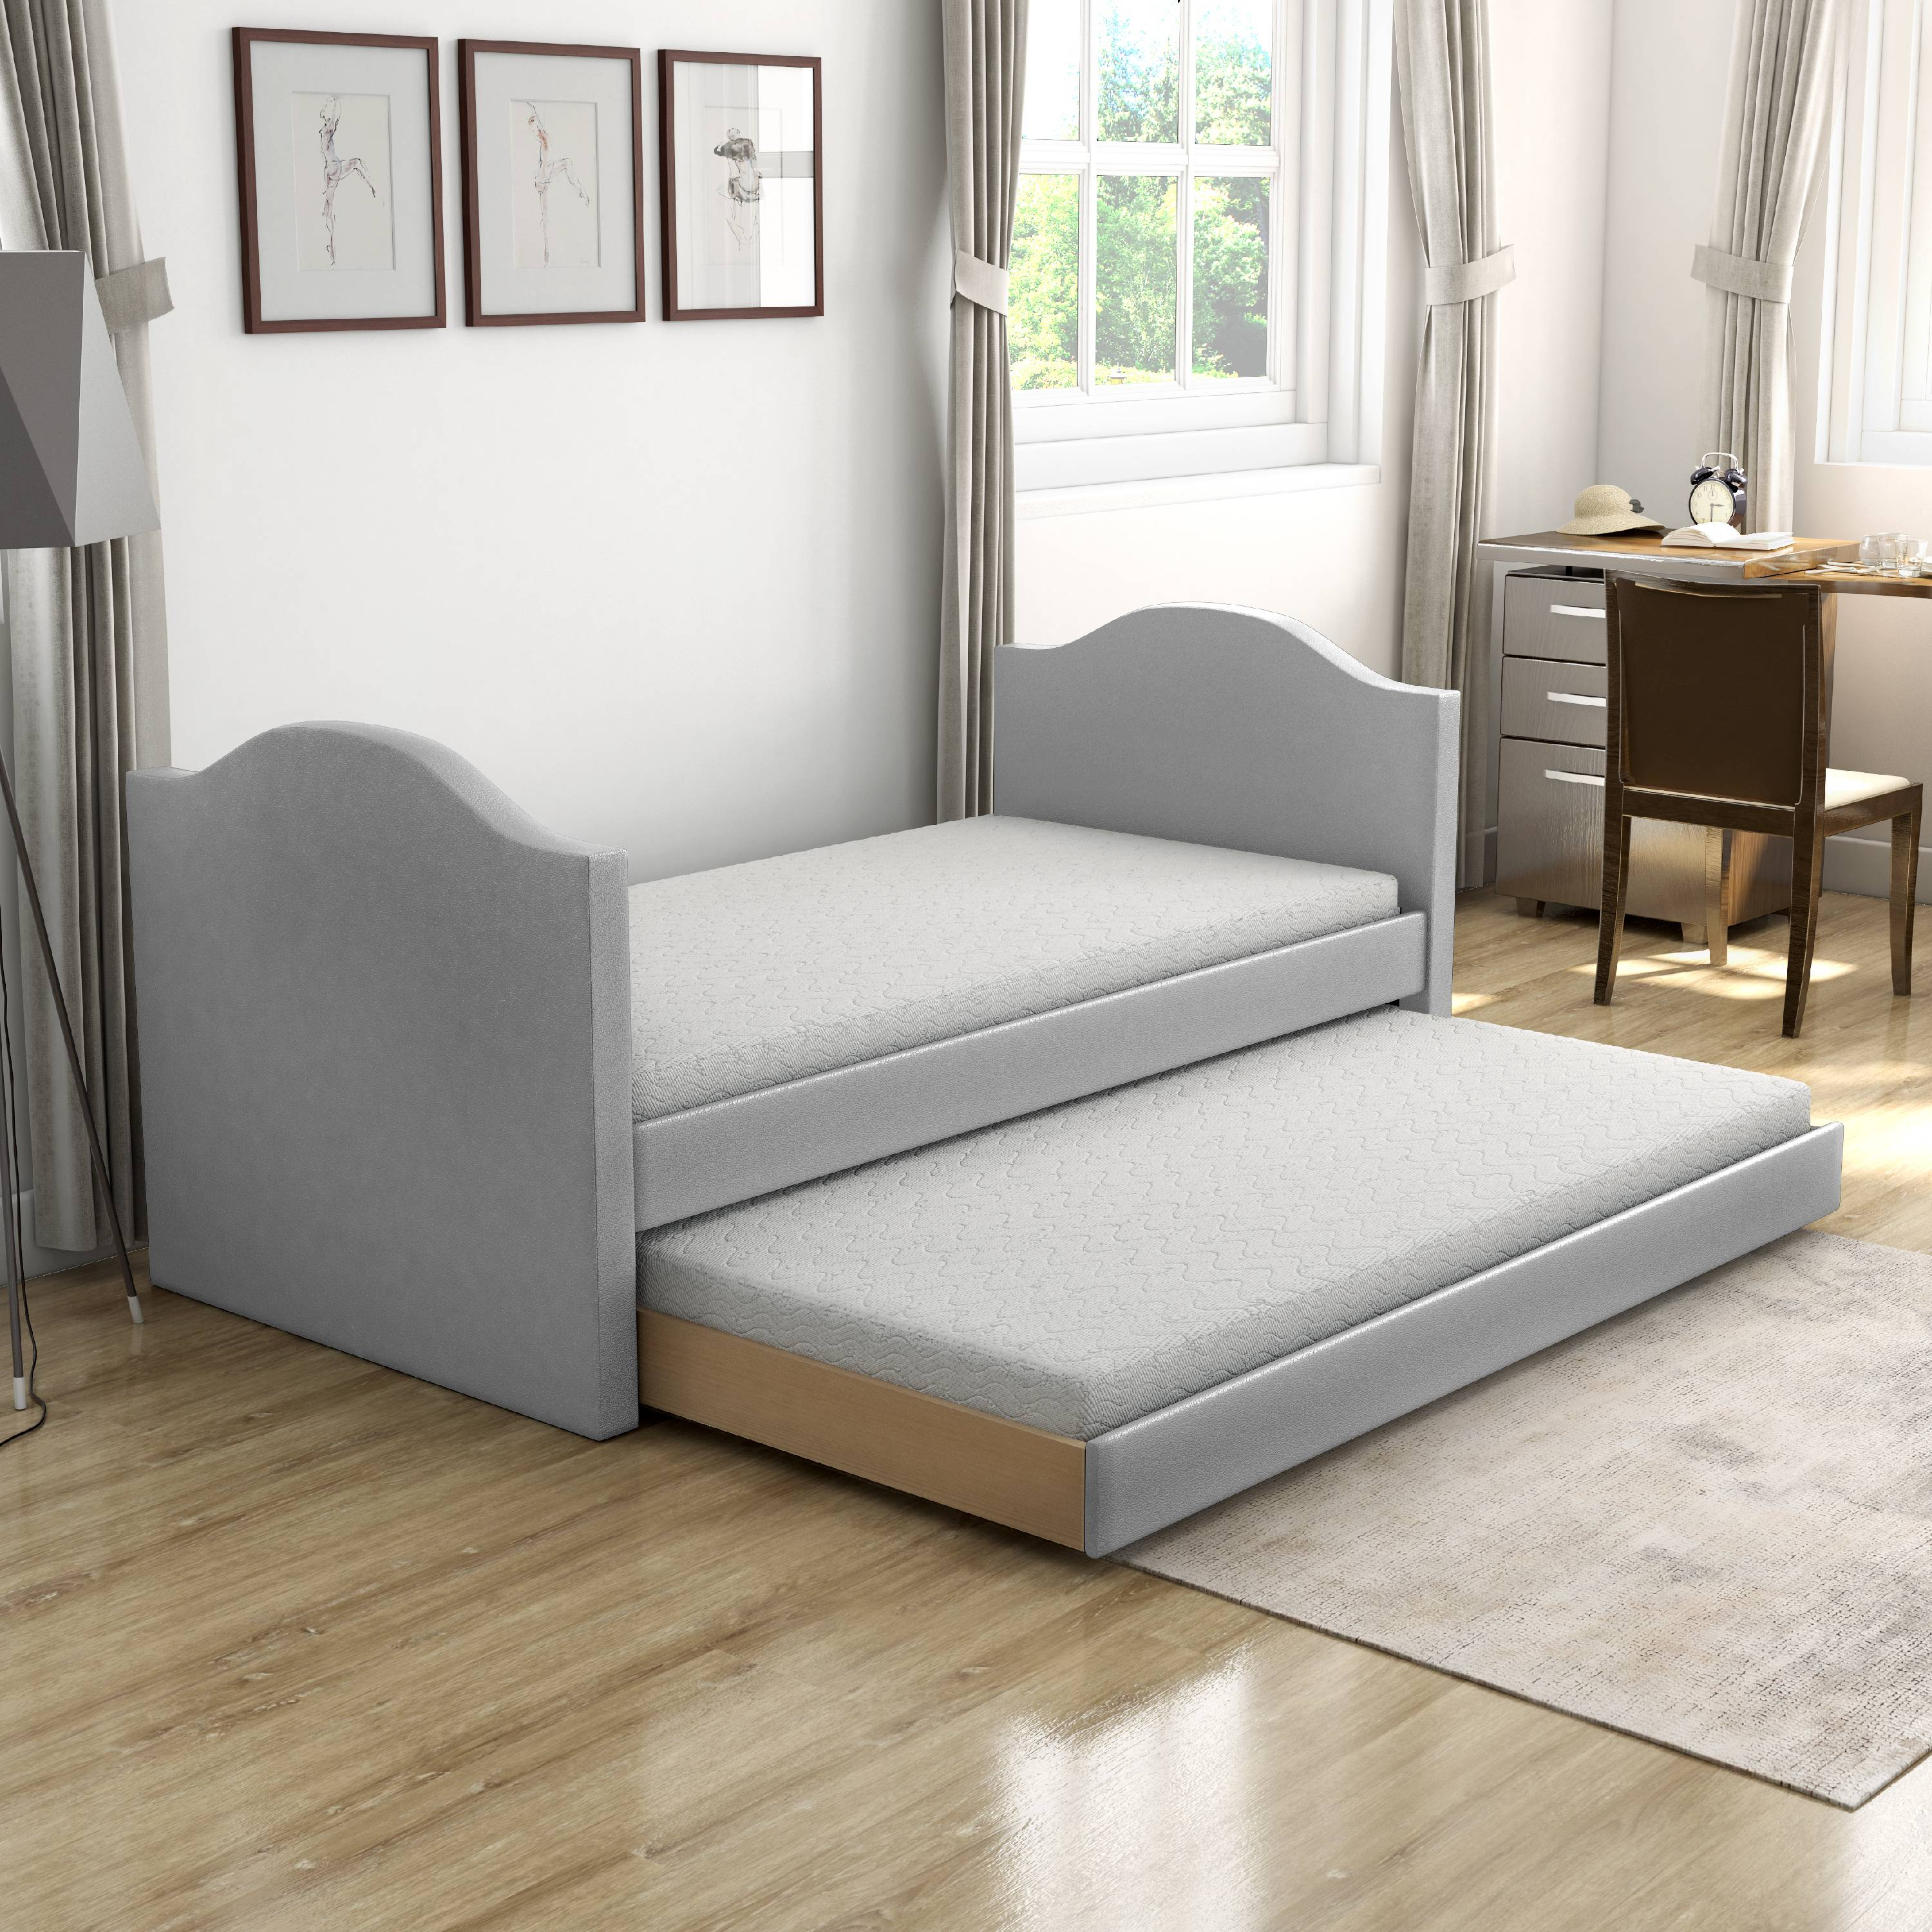 Picture of: Premier Melissa Gray Upholstered Faux Leather Daybed With Trundle Bed Twin Walmart Com Walmart Com